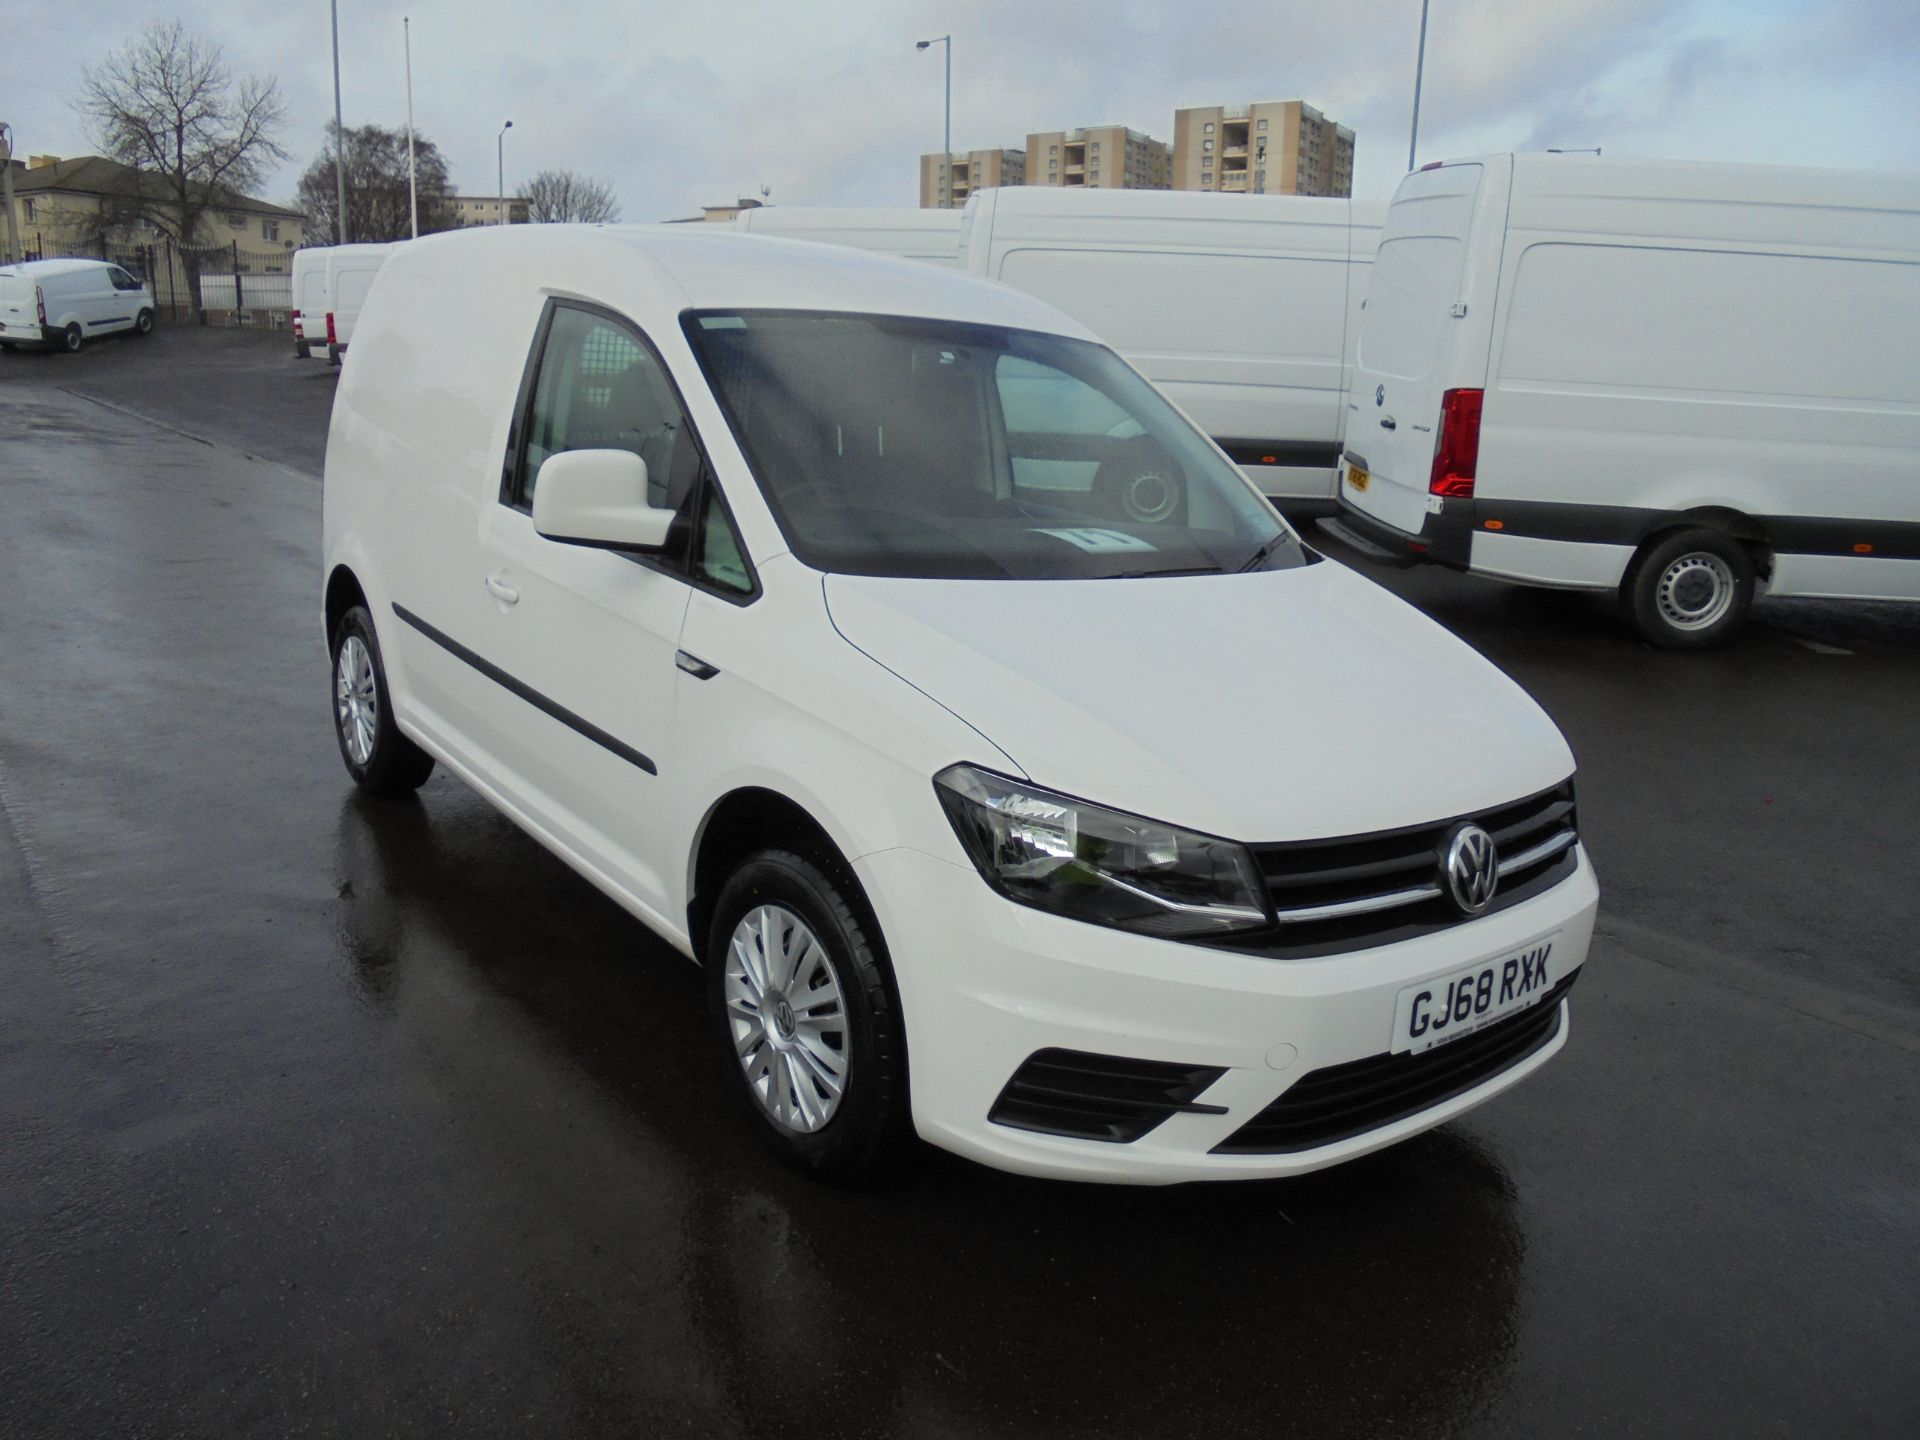 2018 Volkswagen Caddy 2.0 Tdi Bluemotion Tech 102Ps Trendline [Ac] Van (GJ68RXK) Image 1